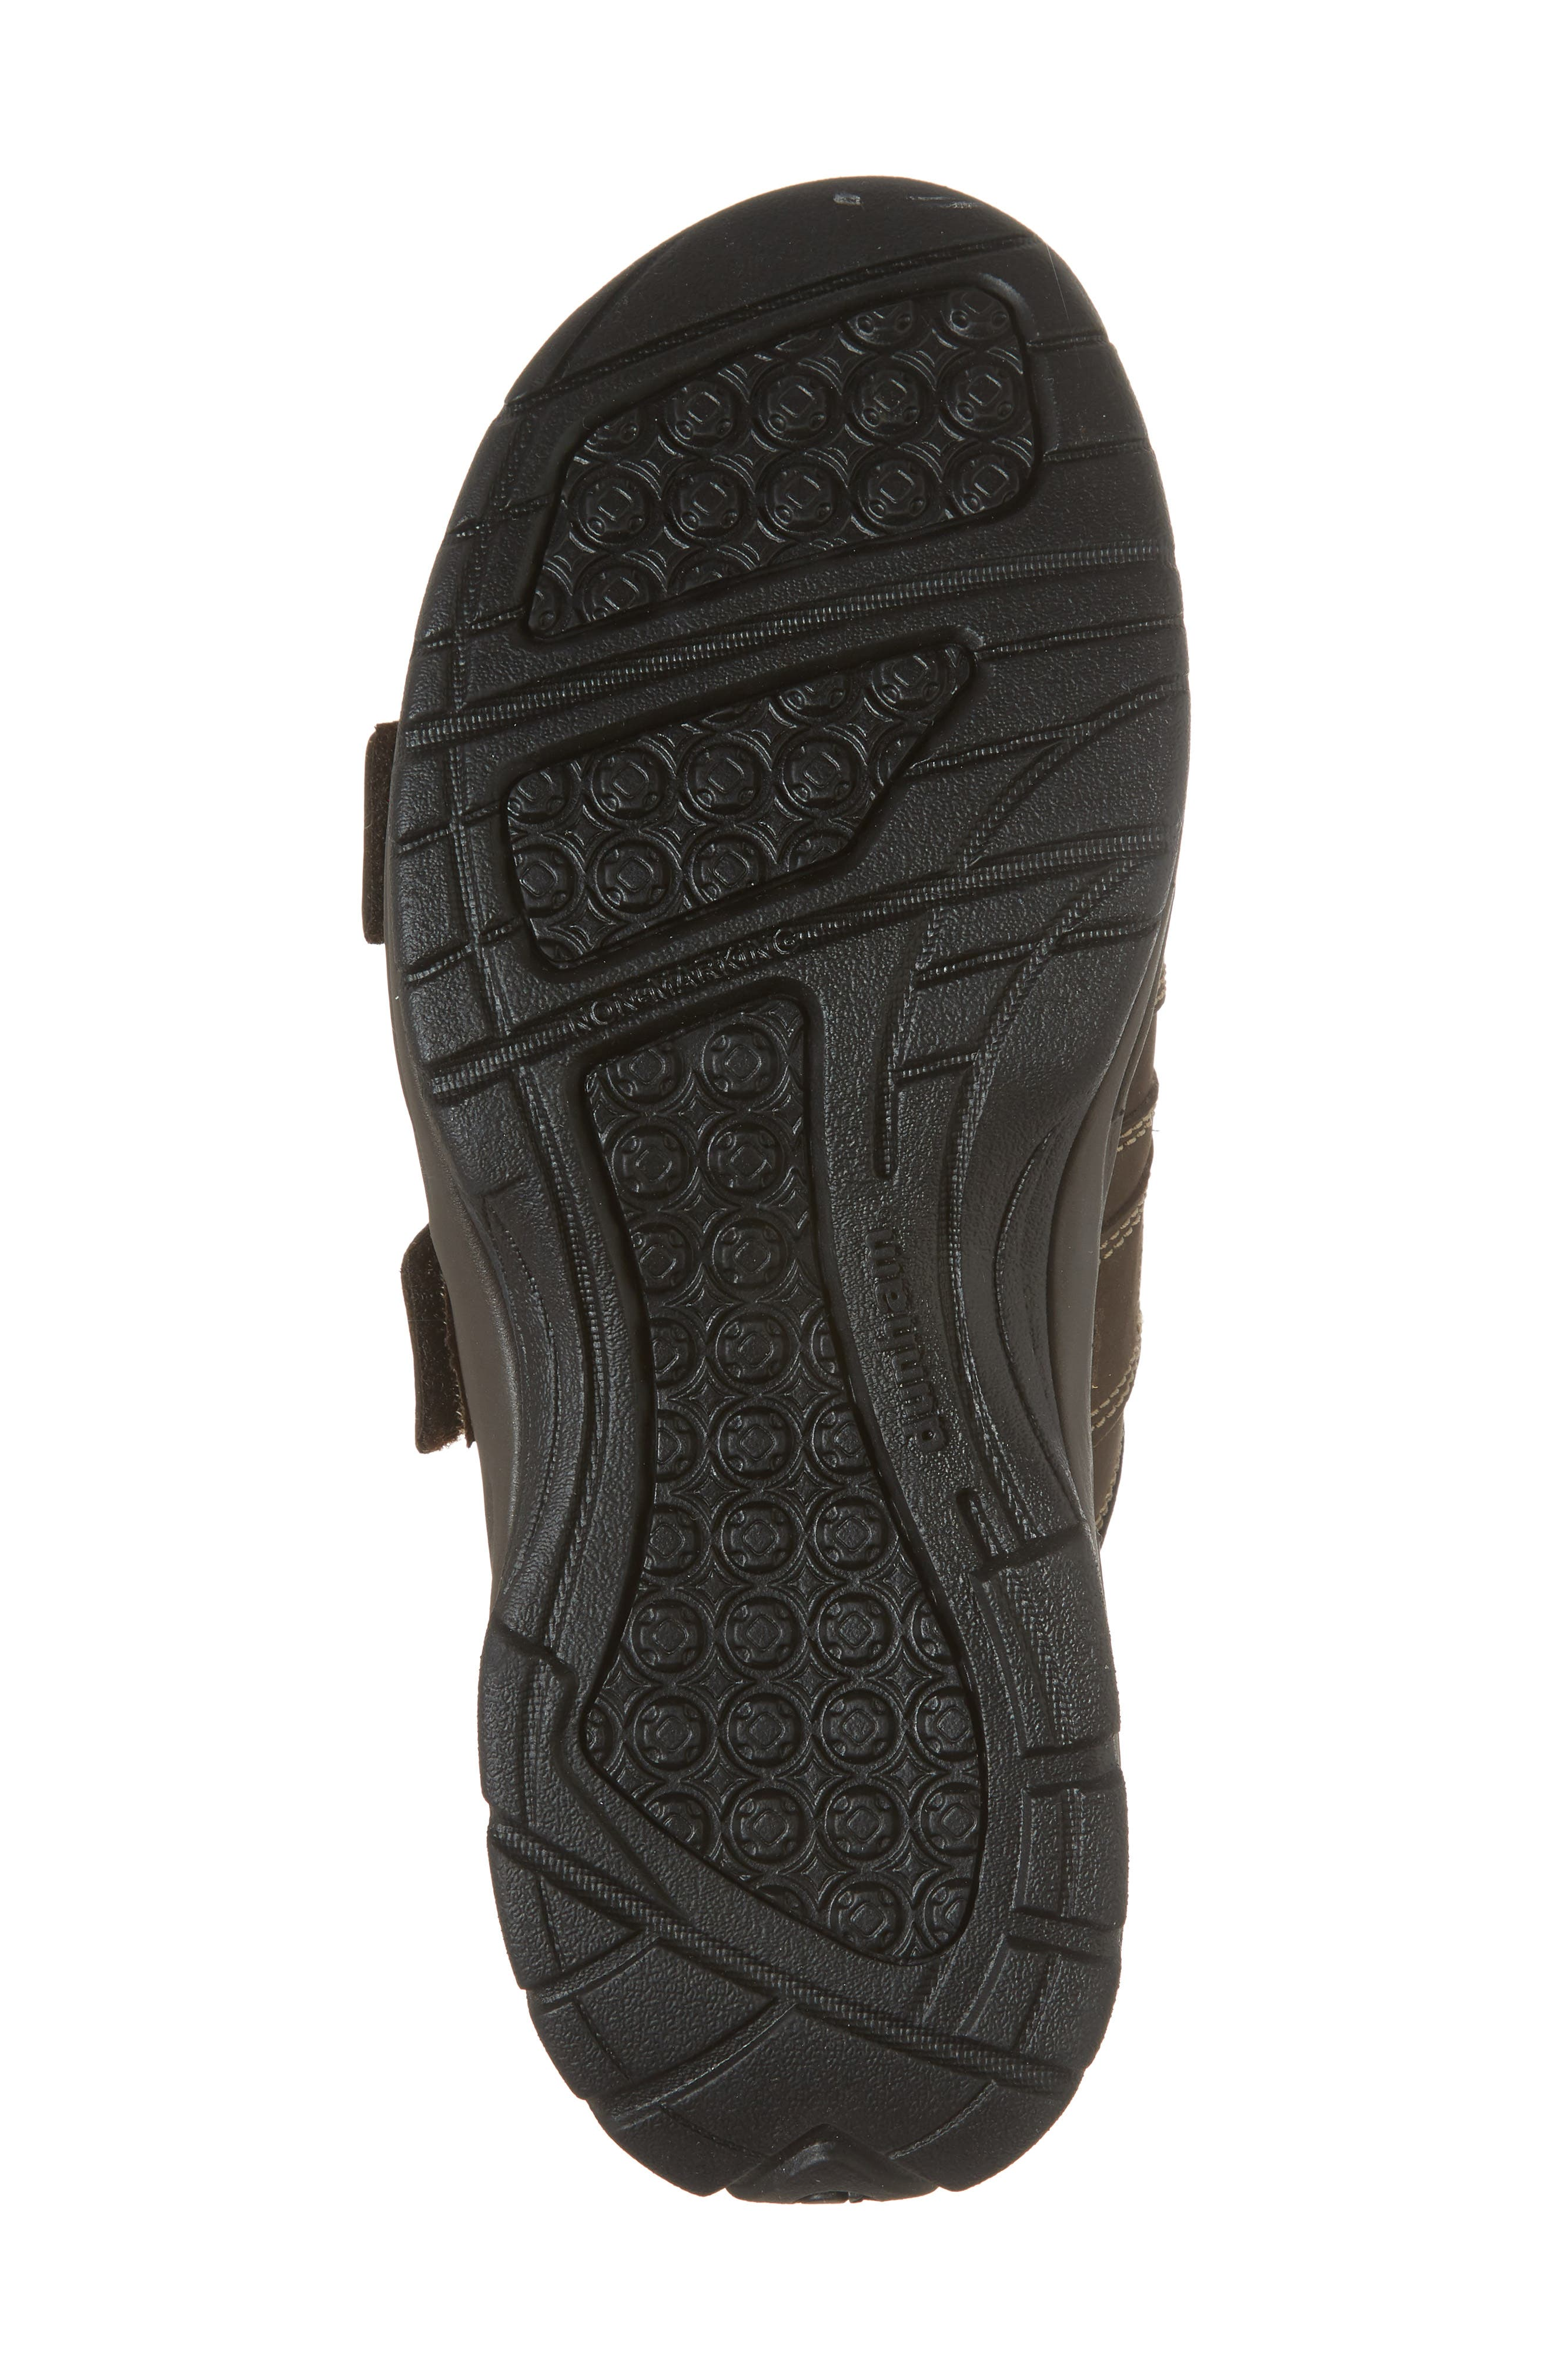 Newport Slide Sandal,                             Alternate thumbnail 6, color,                             Dark Brown Leather